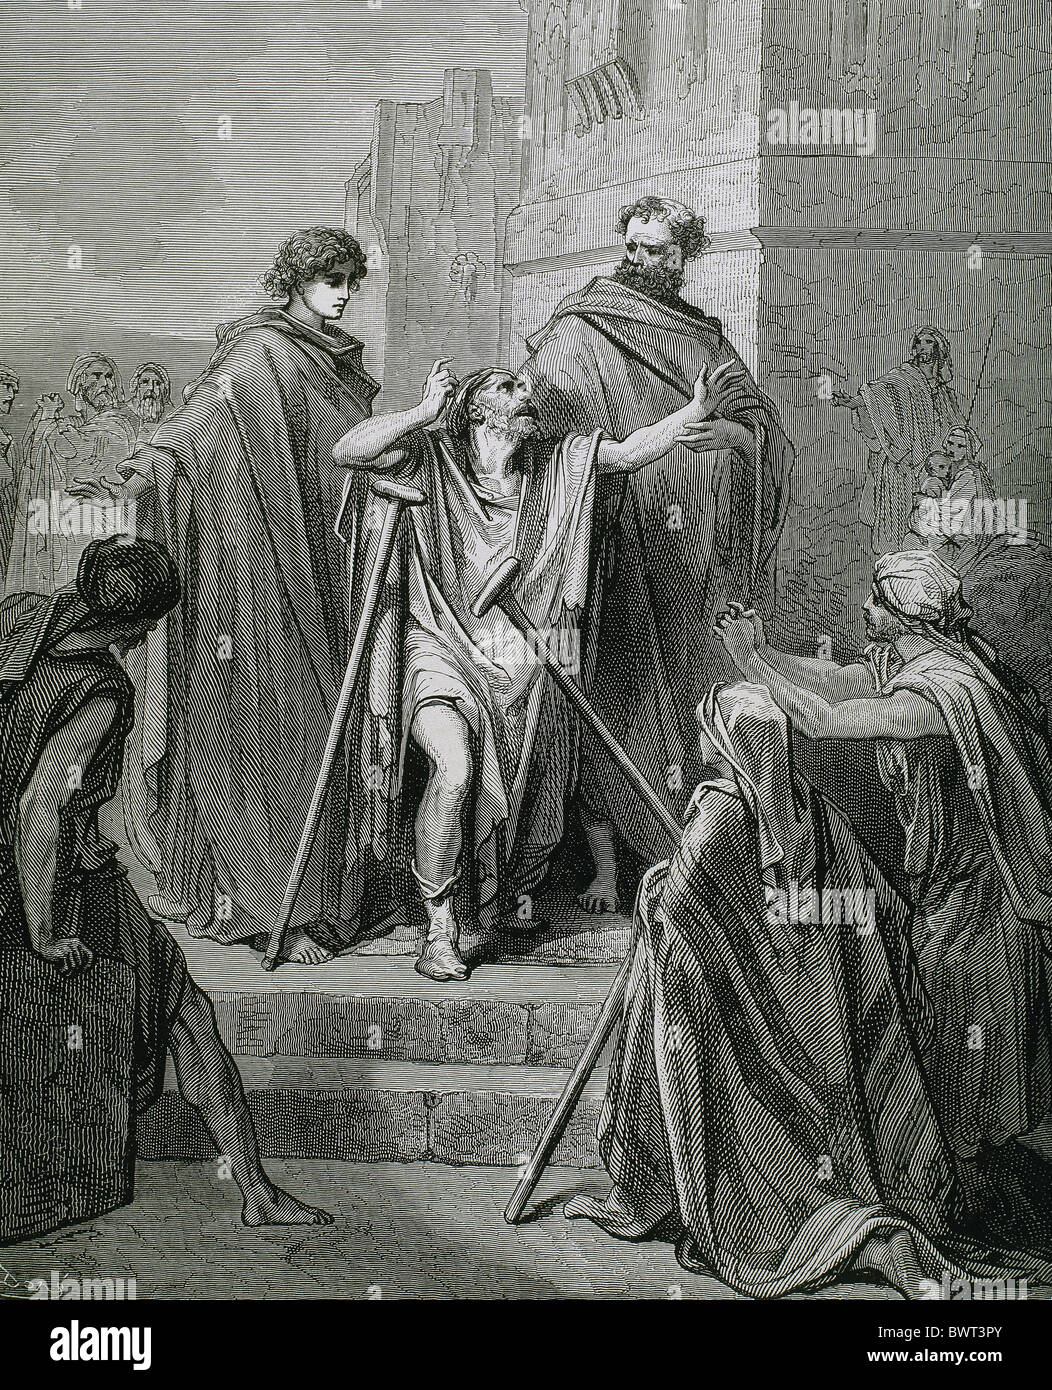 Saint Peter and Saint John healing a lame. Drawing by Dore. - Stock Image